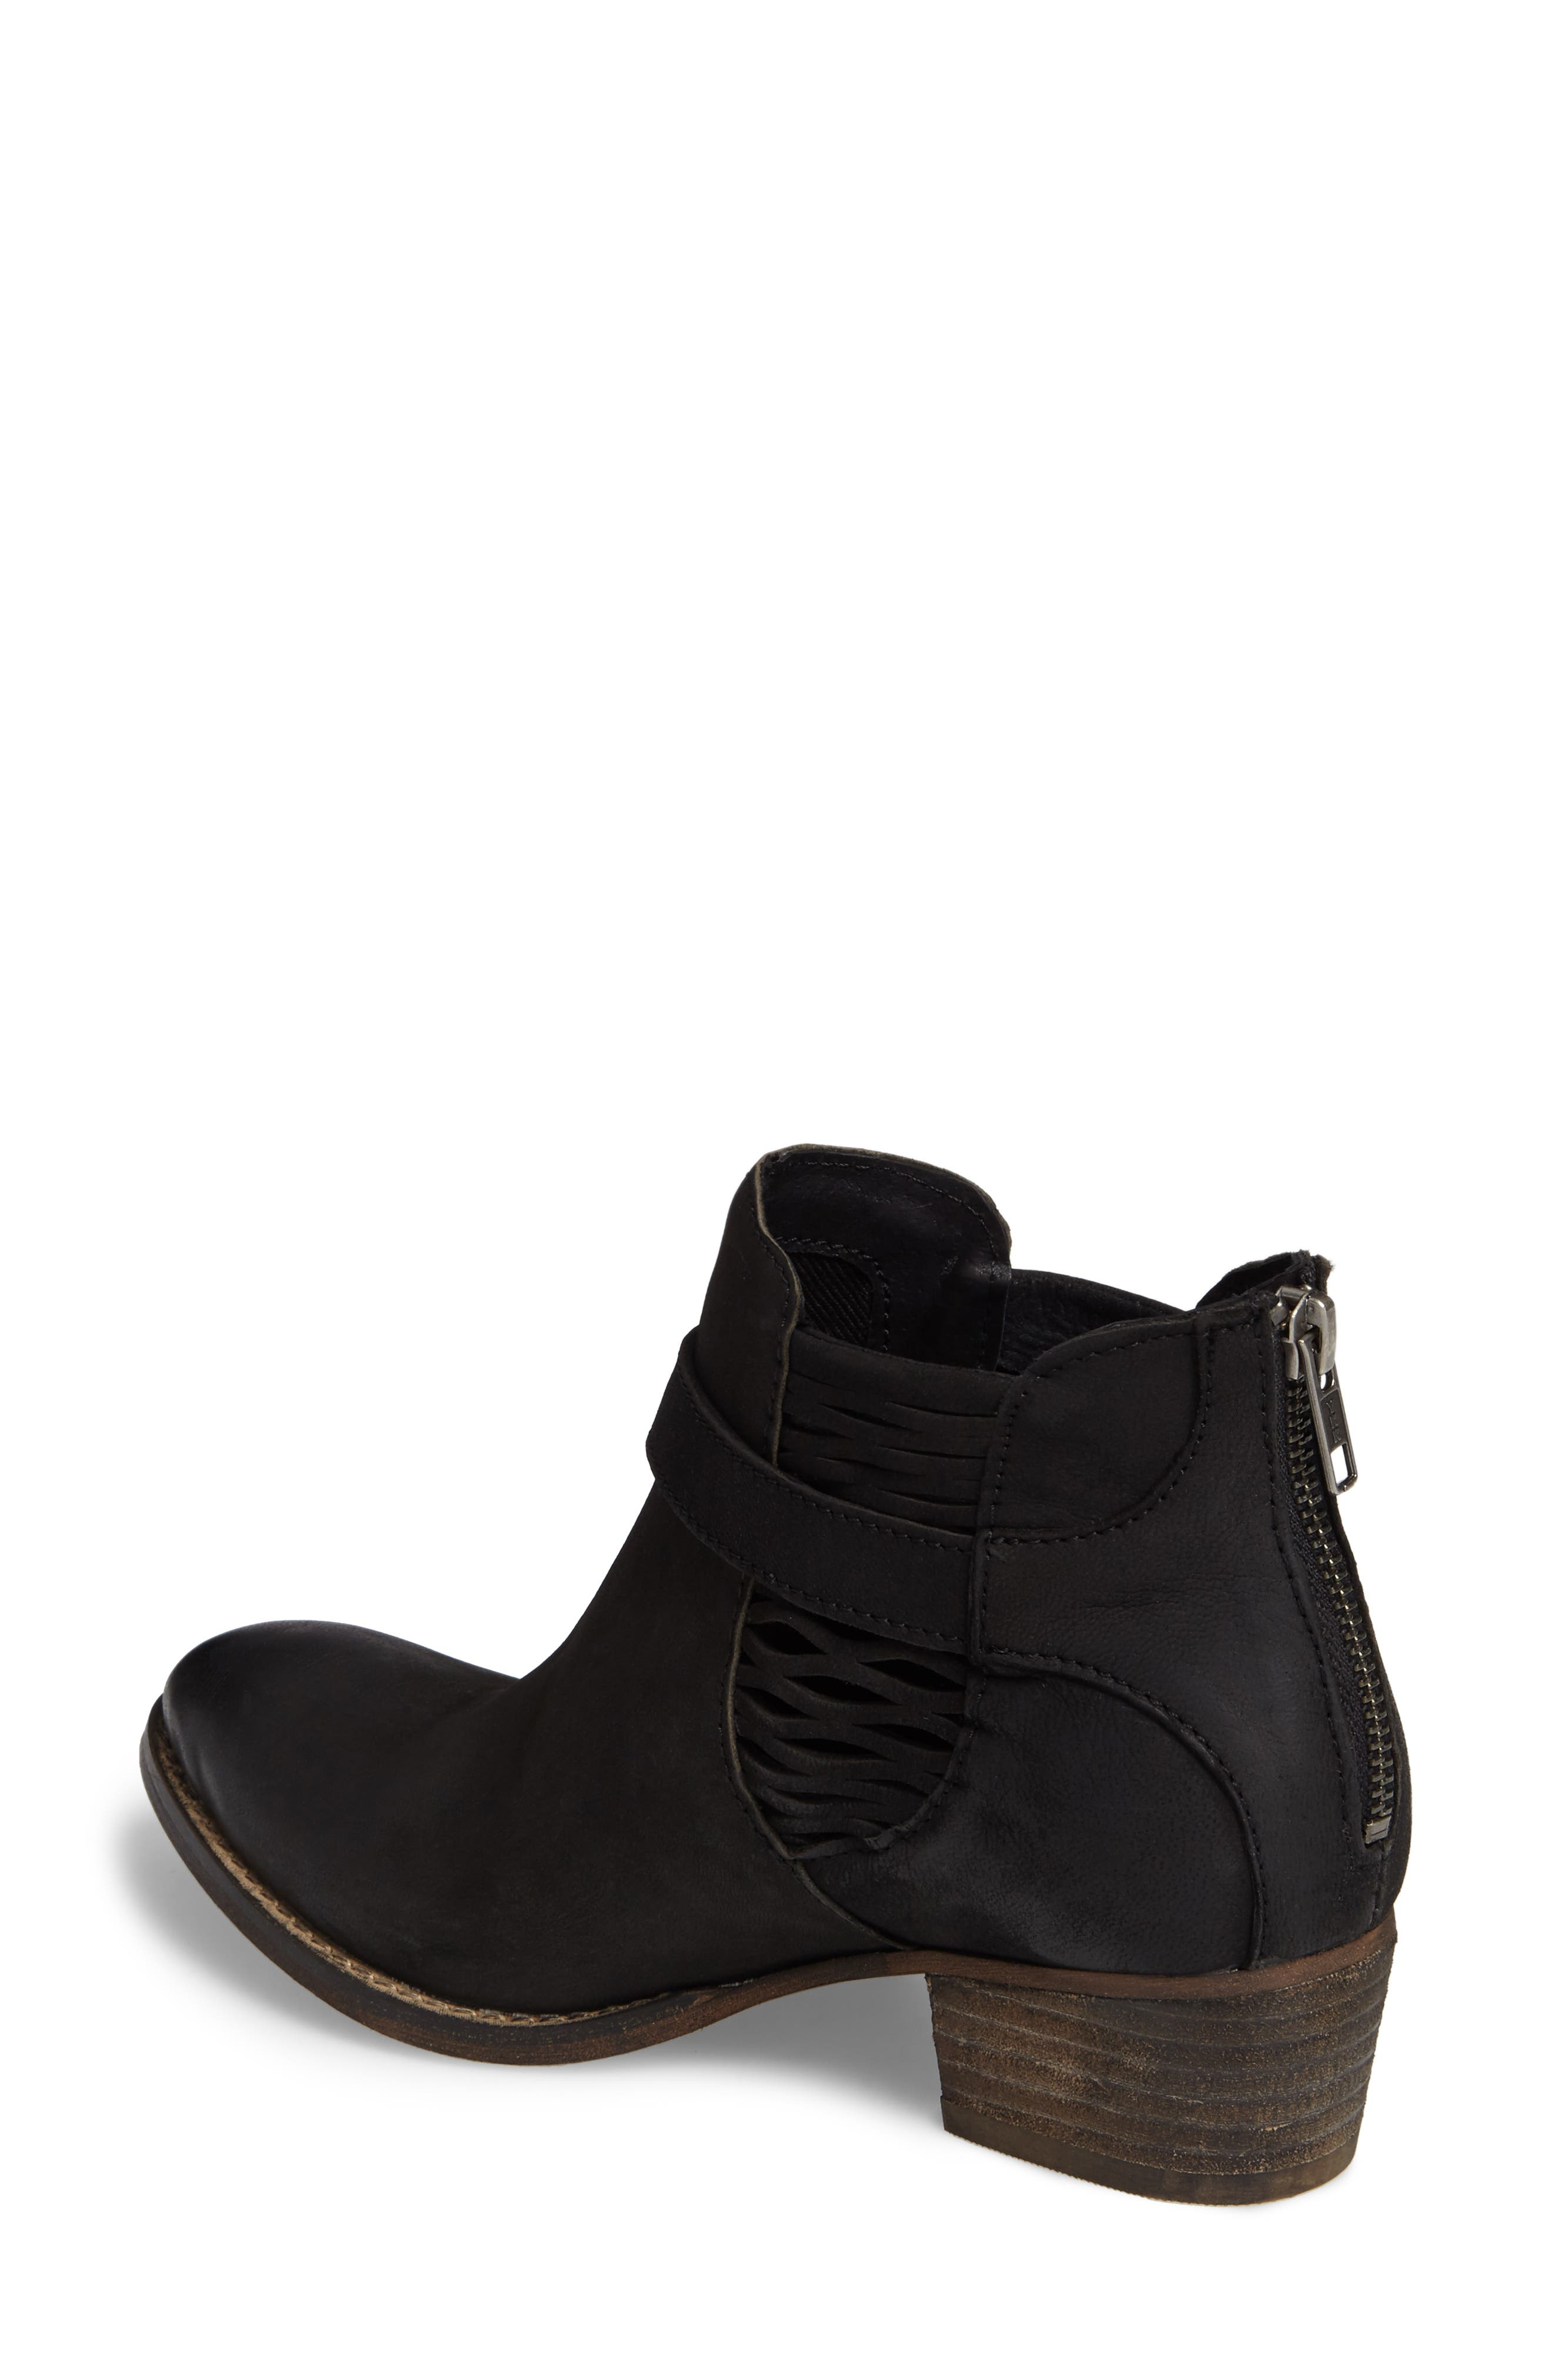 Yara Perforated Chelsea Bootie,                             Alternate thumbnail 2, color,                             001